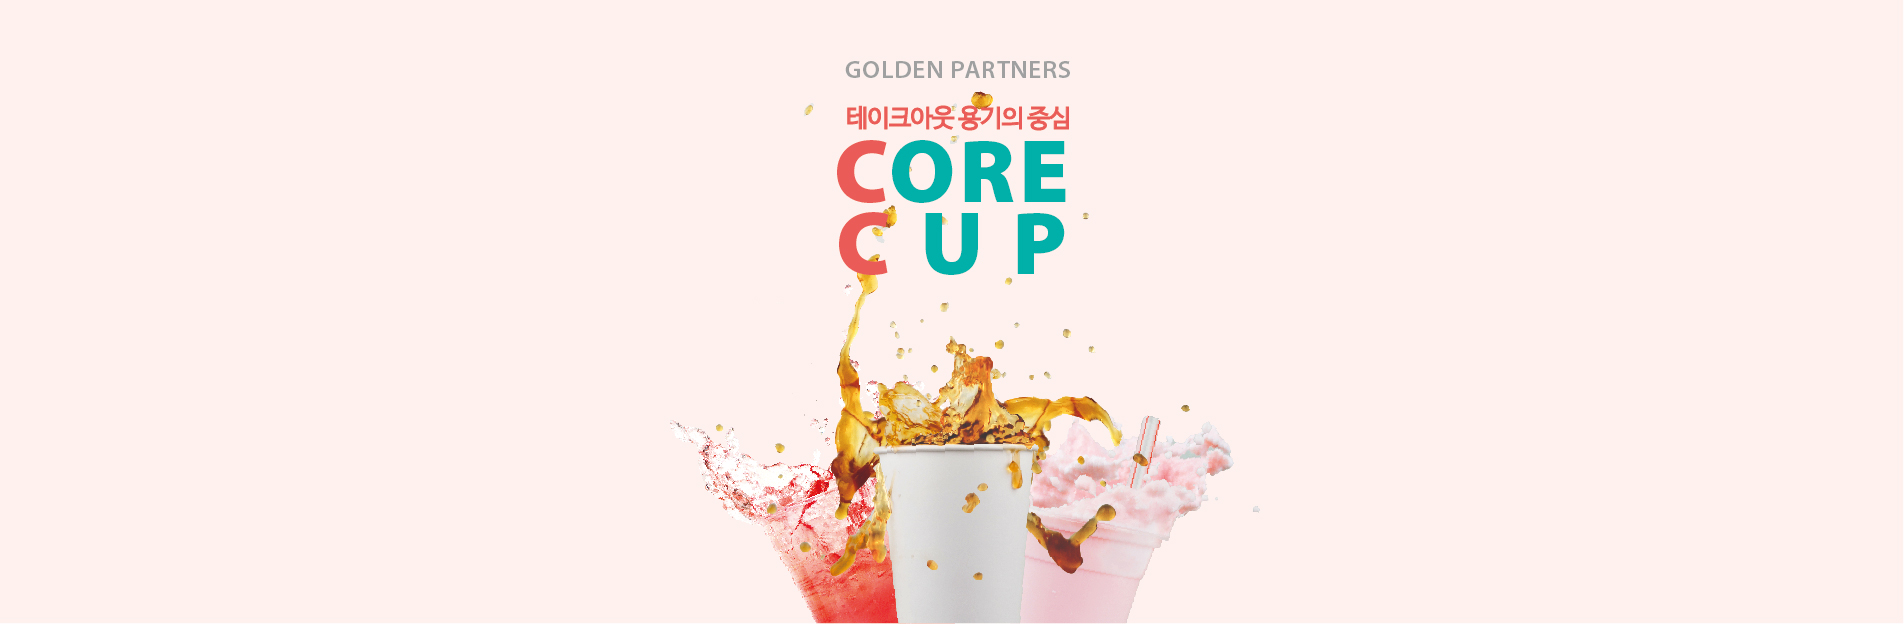 Core Cup-01